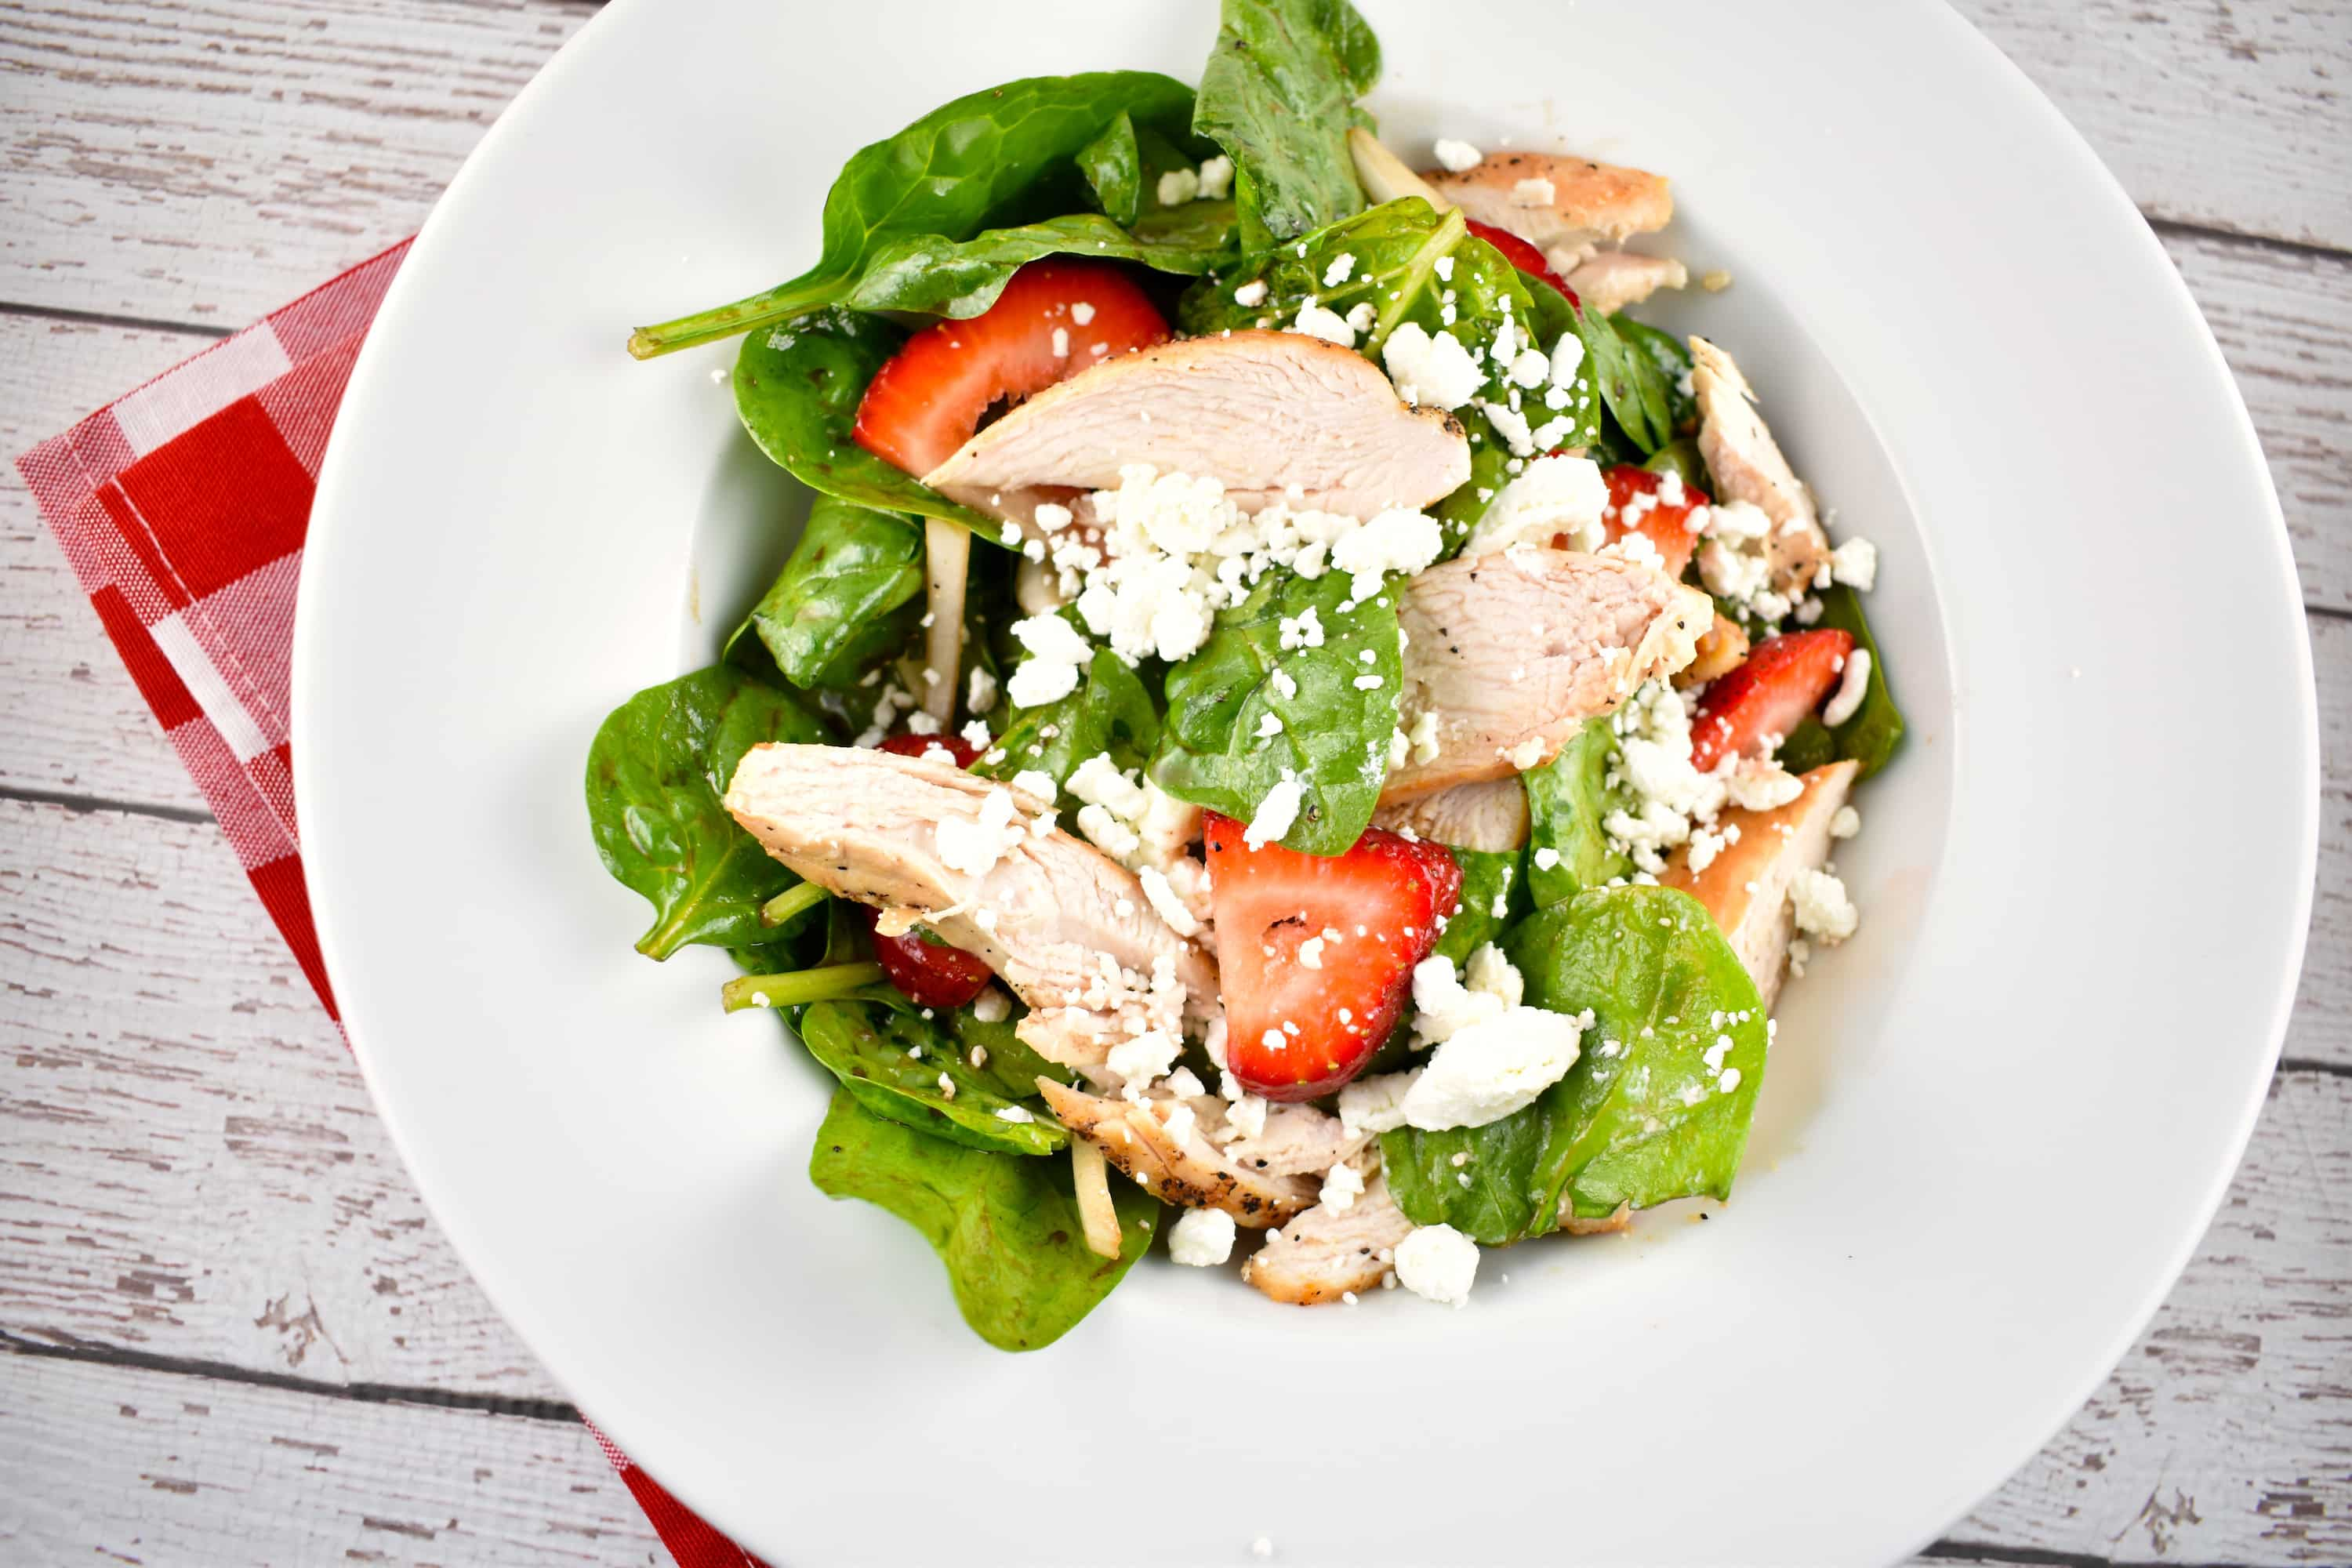 Grilled Chicken Spinach And Strawberry Salad Recipe 5 Points Laaloosh